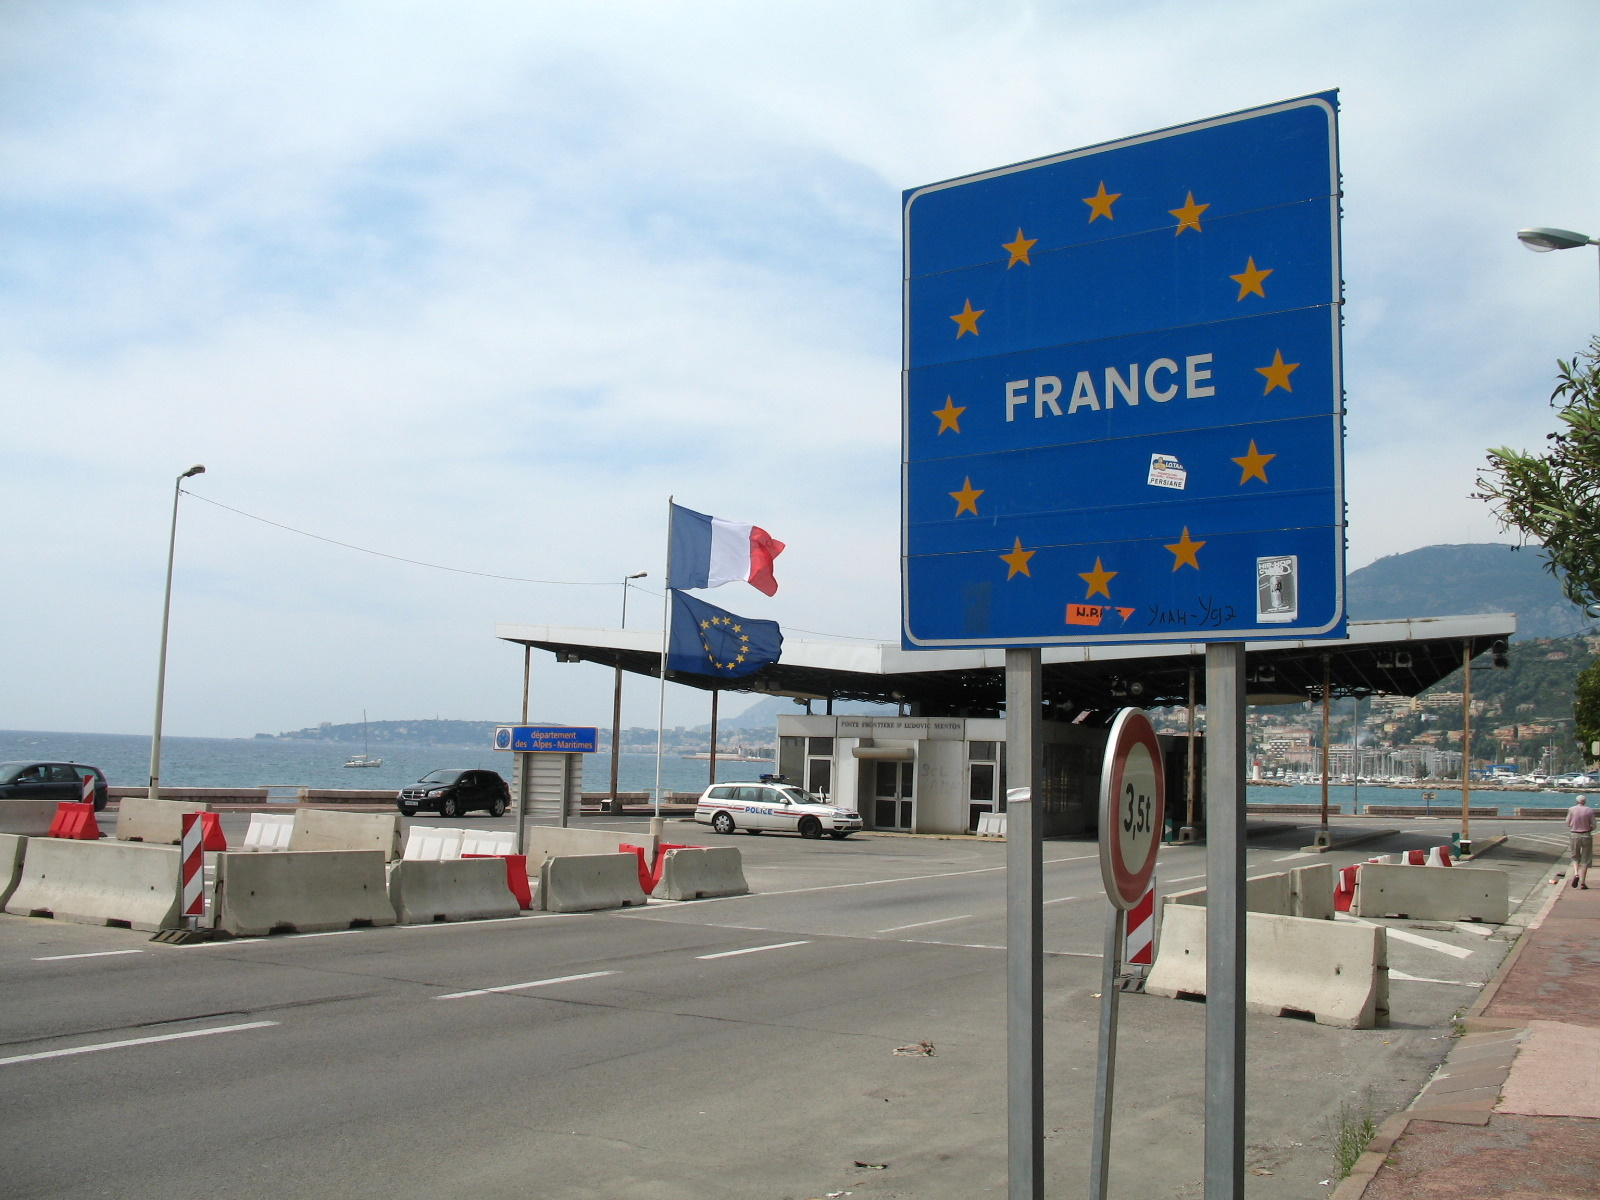 France will impose border controls for climate talks  EURACTIVcom